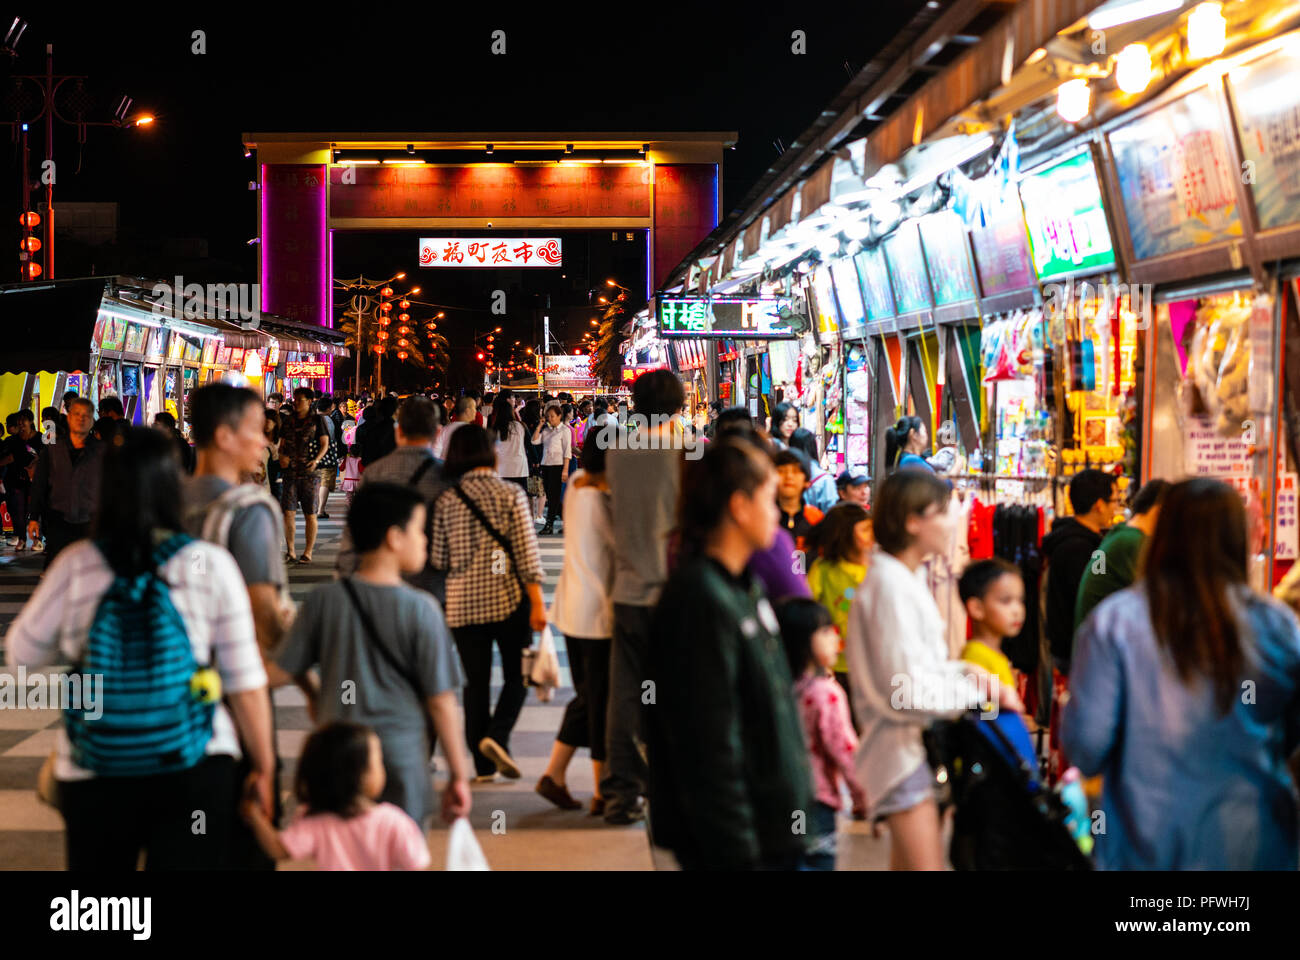 28 February 2018, Hualien Taiwan : Hualien Dongdamen tourist night market street view full of people - Stock Image